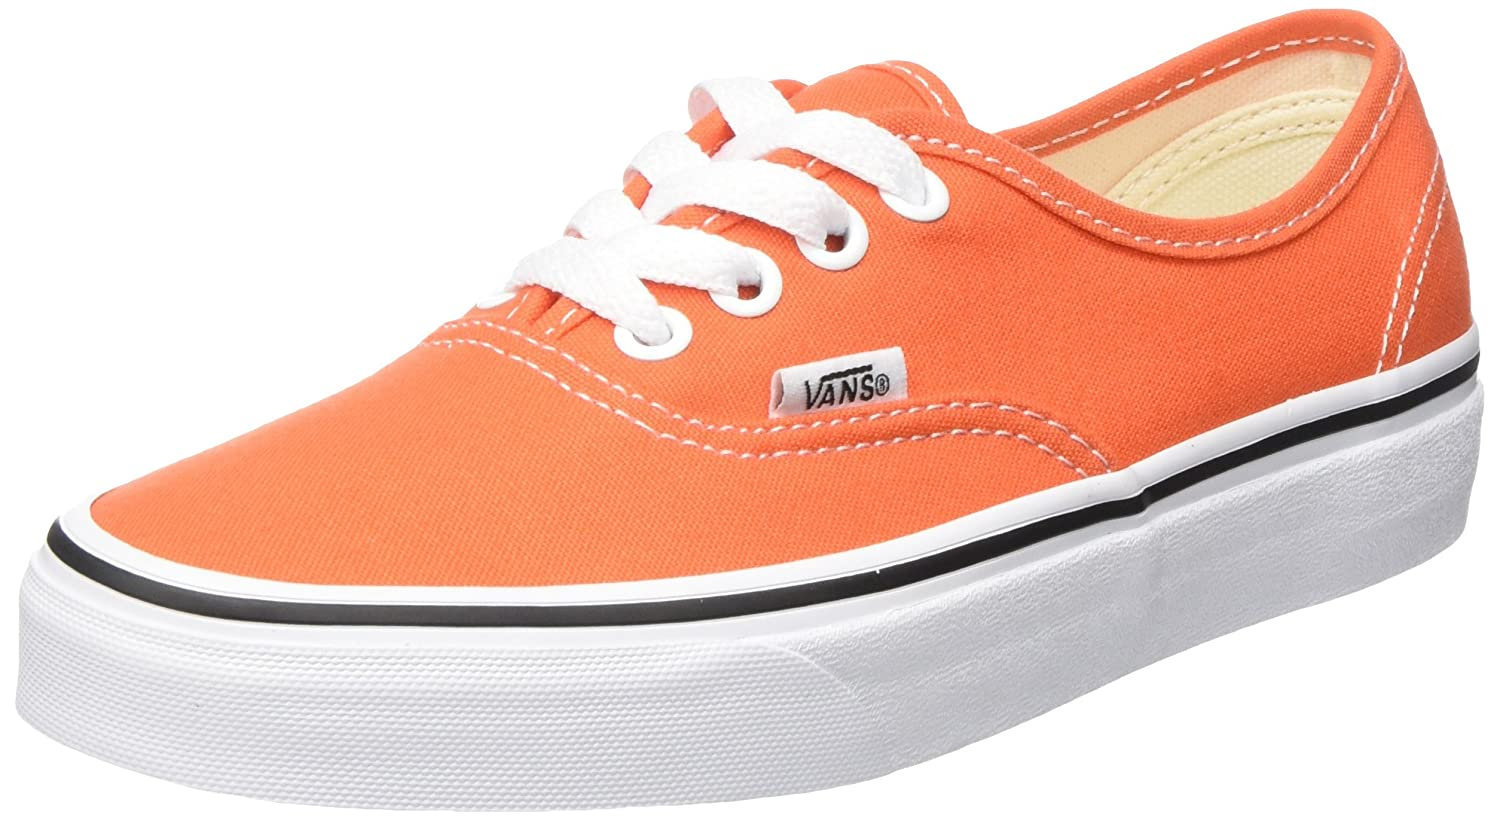 Vans Unisex-Erwachsene Authentic Sneaker  34.5 EU|Orange (Flame/True White 2w1)